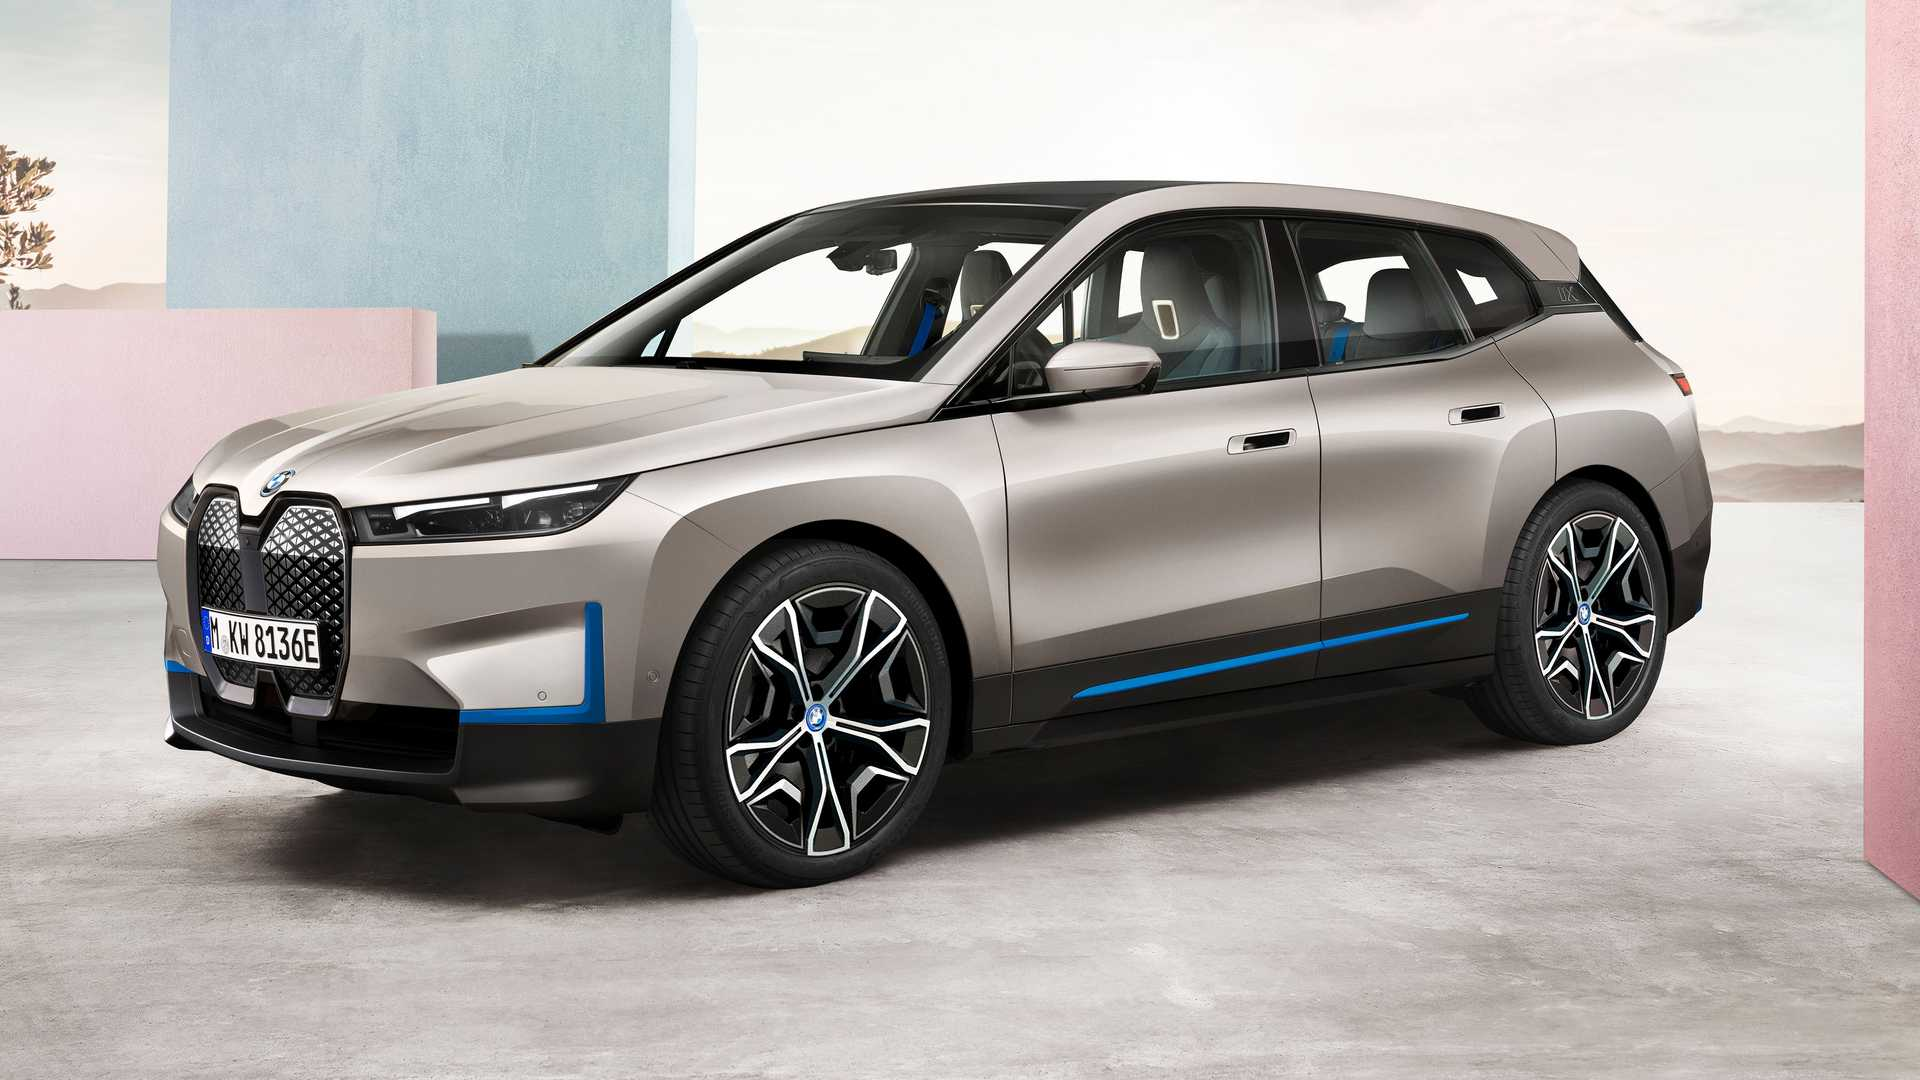 BMW iX Debuts As EV Tech Flagship With 500 HP, 300-Mile Range